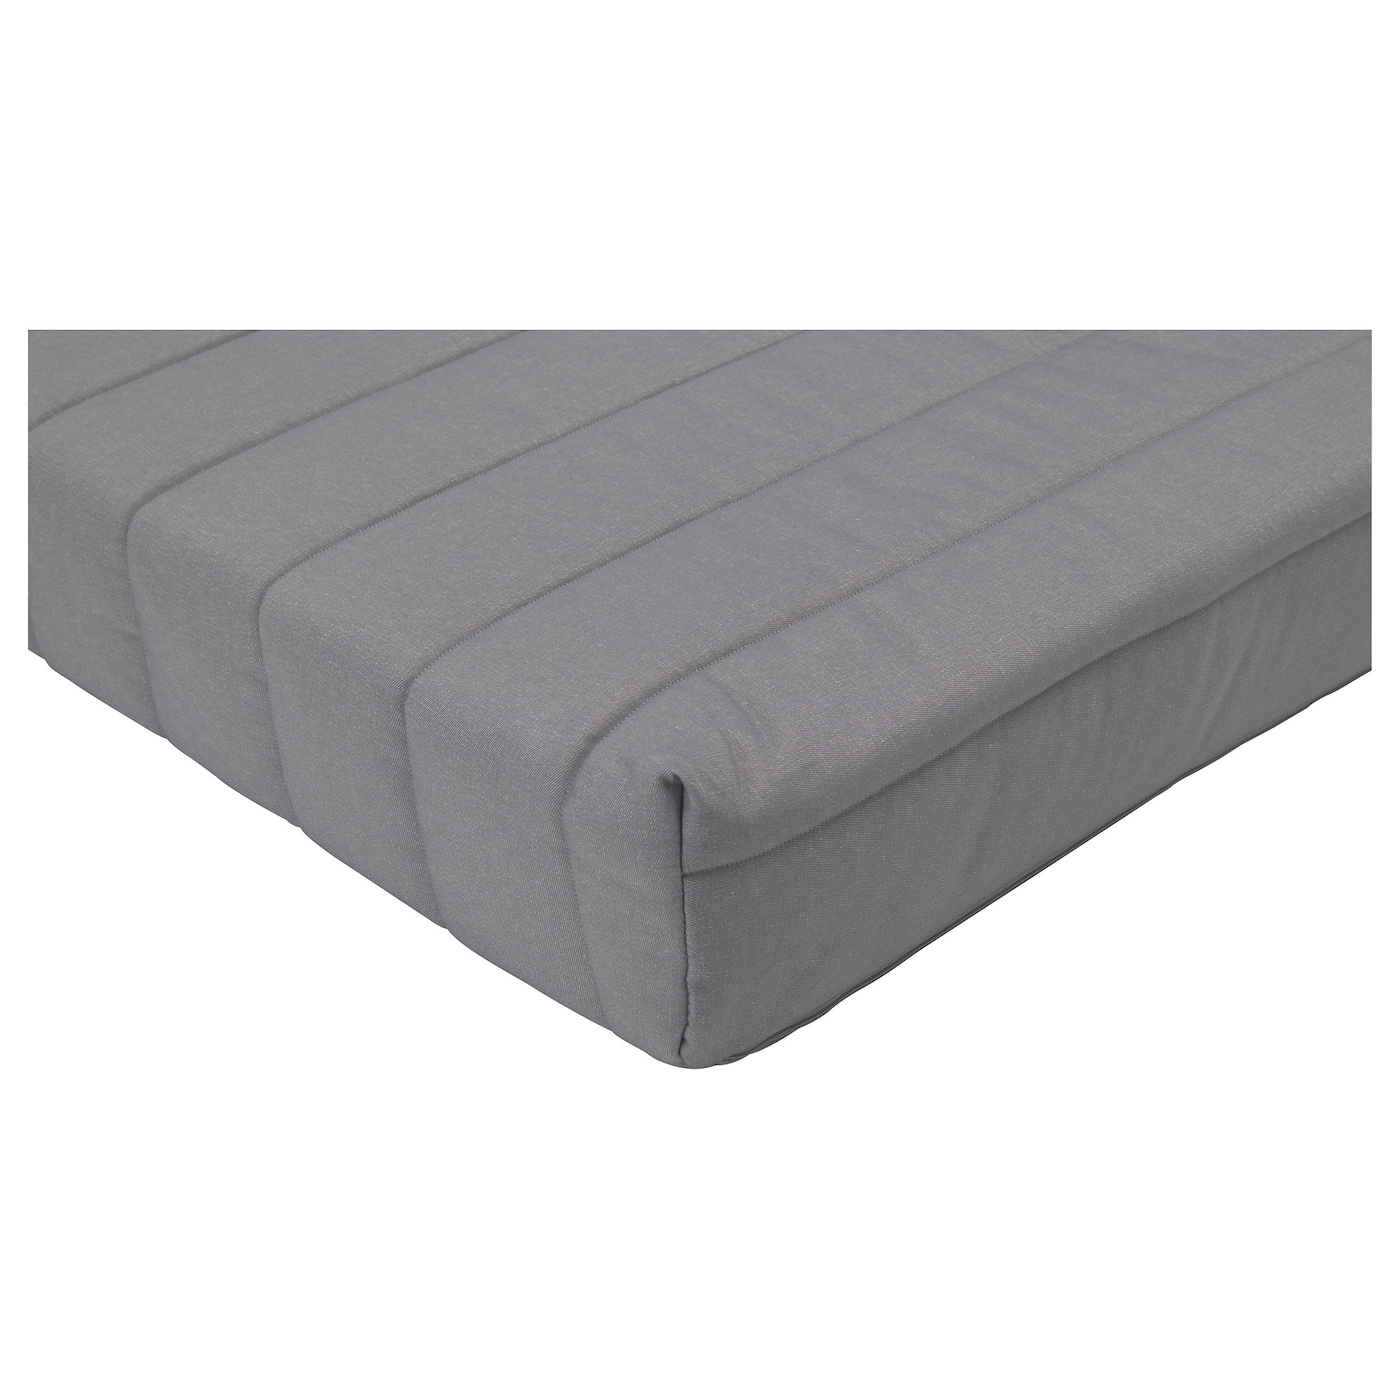 seating products seires argento cushions deep cushion futon jensen casual